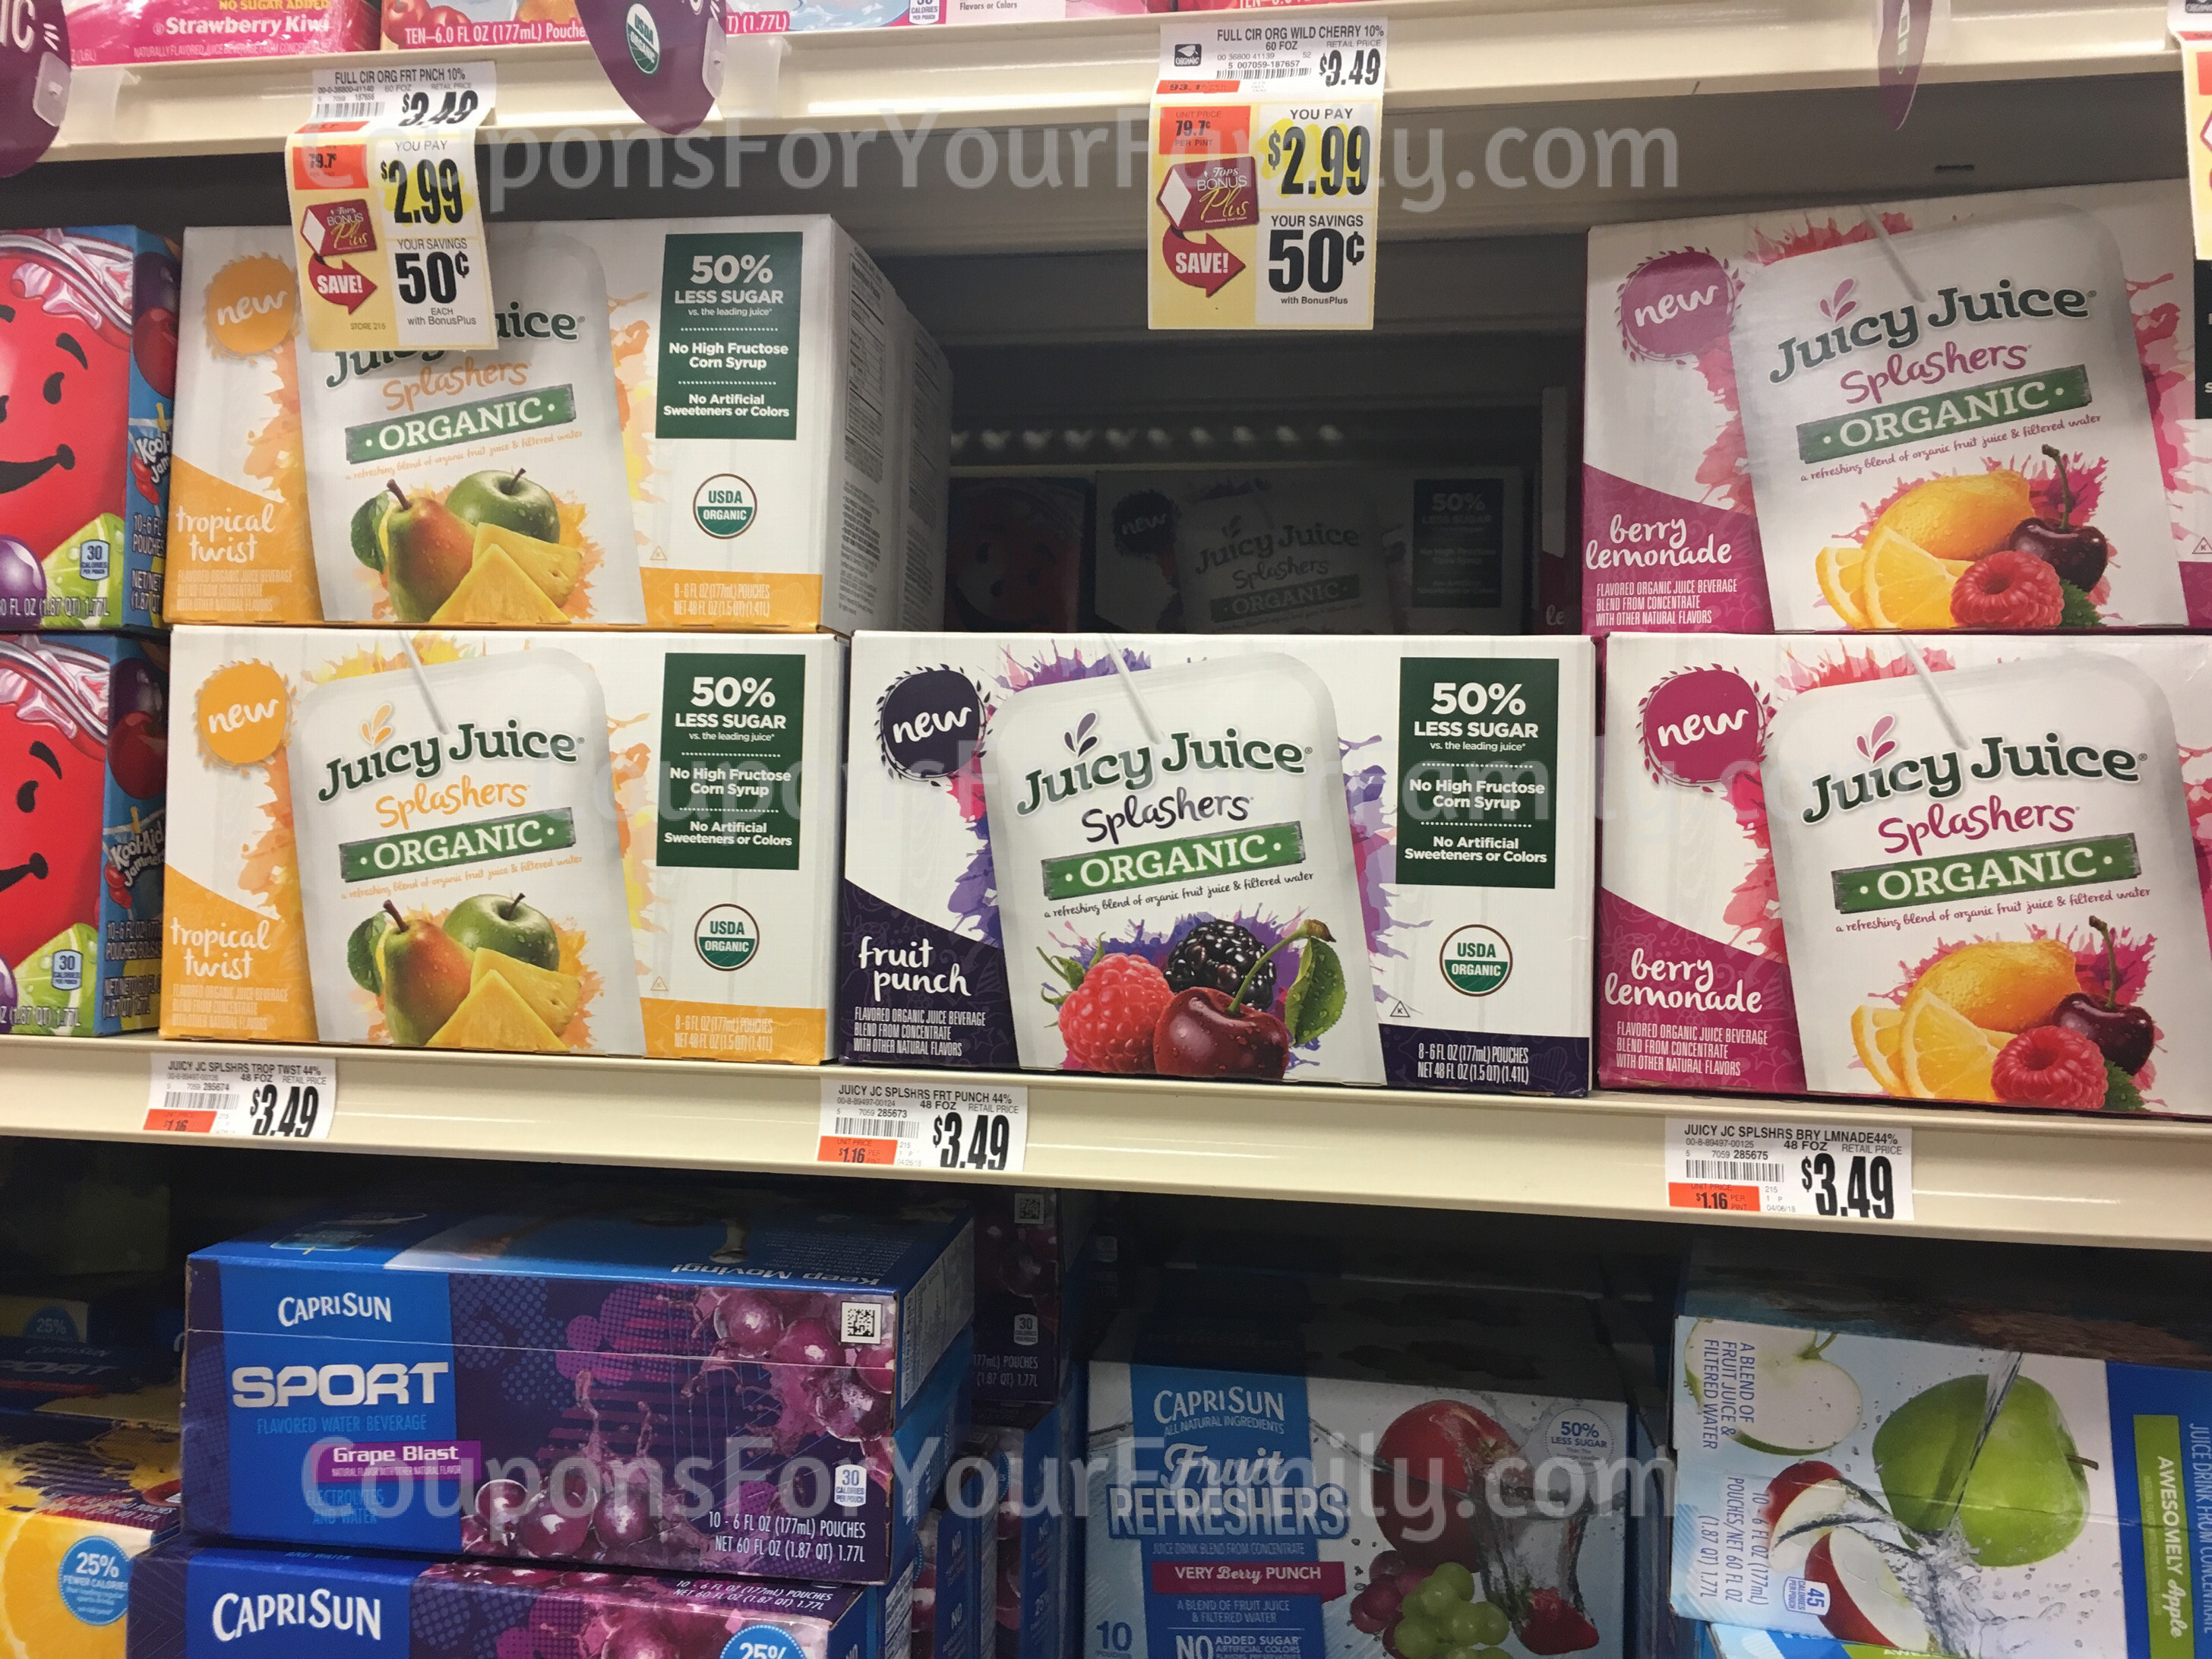 **HOT**  Tops Markets ORGANIC Juicy Juice Pouches for only $.99 this week!!